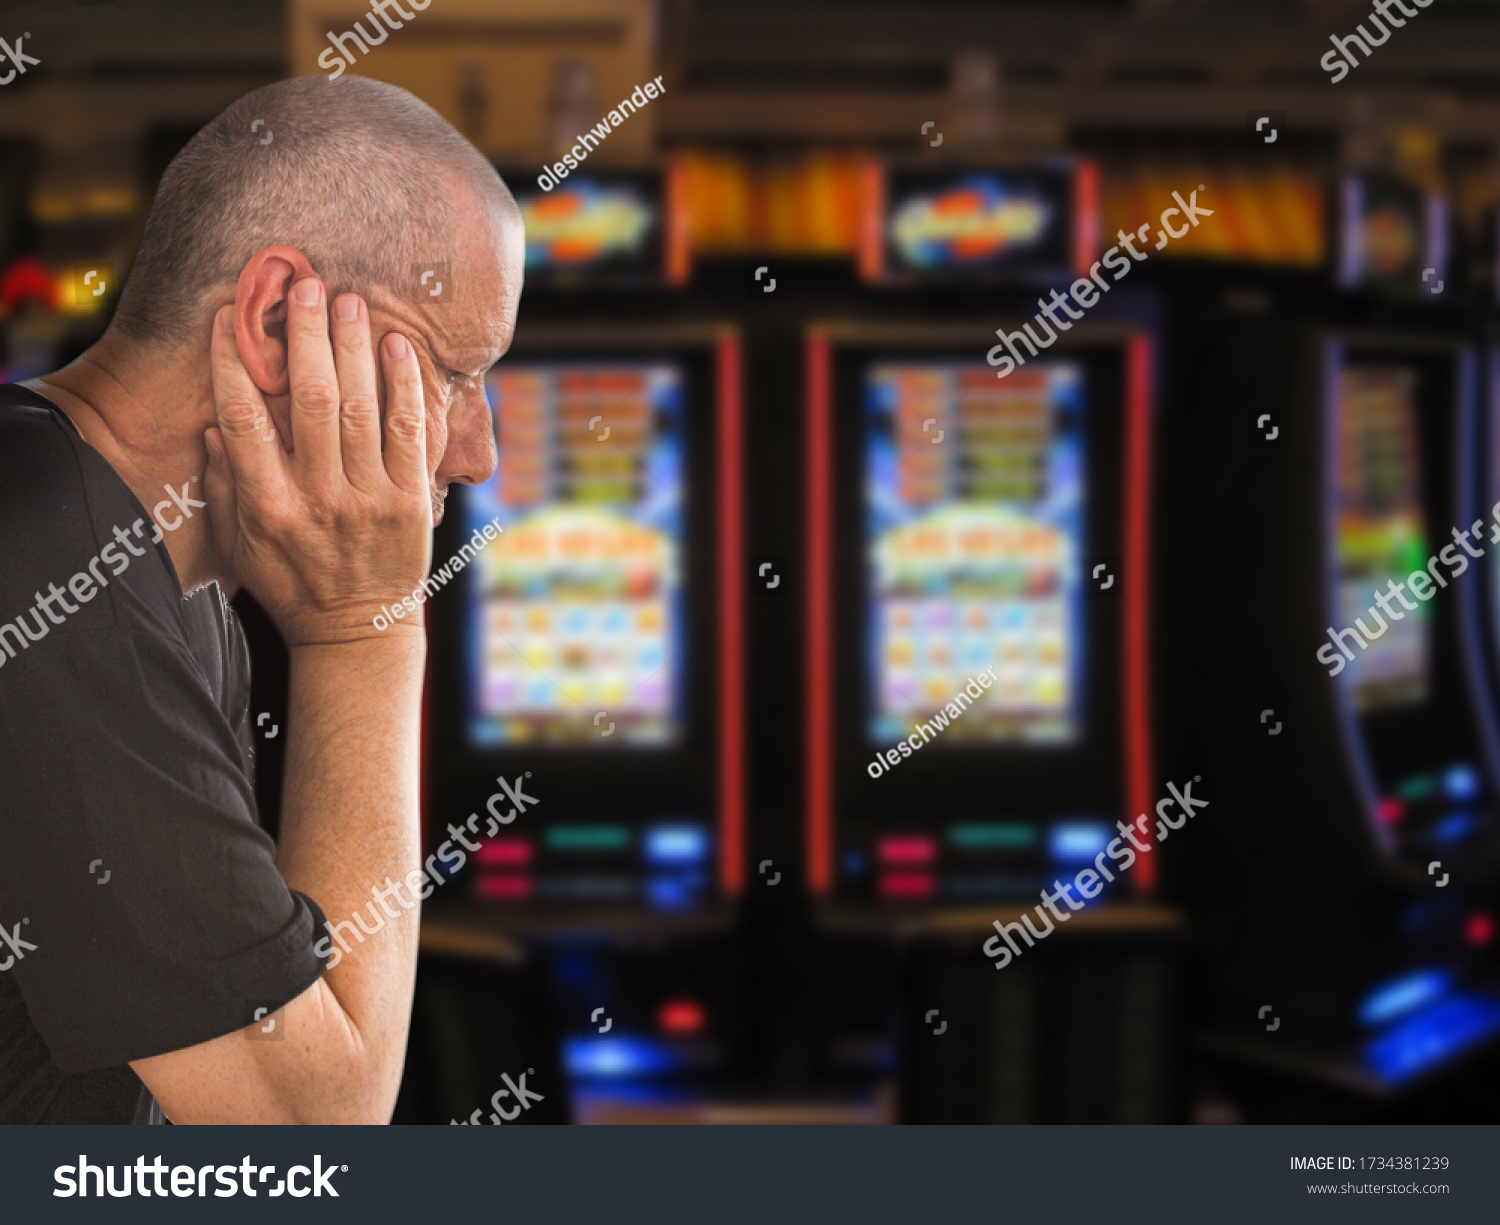 Sad and depressed caucasian man sitting with his hands on his head in front of rows of casino slot machines. Gambling addiction theme image.  Close up portrait. #1734381239